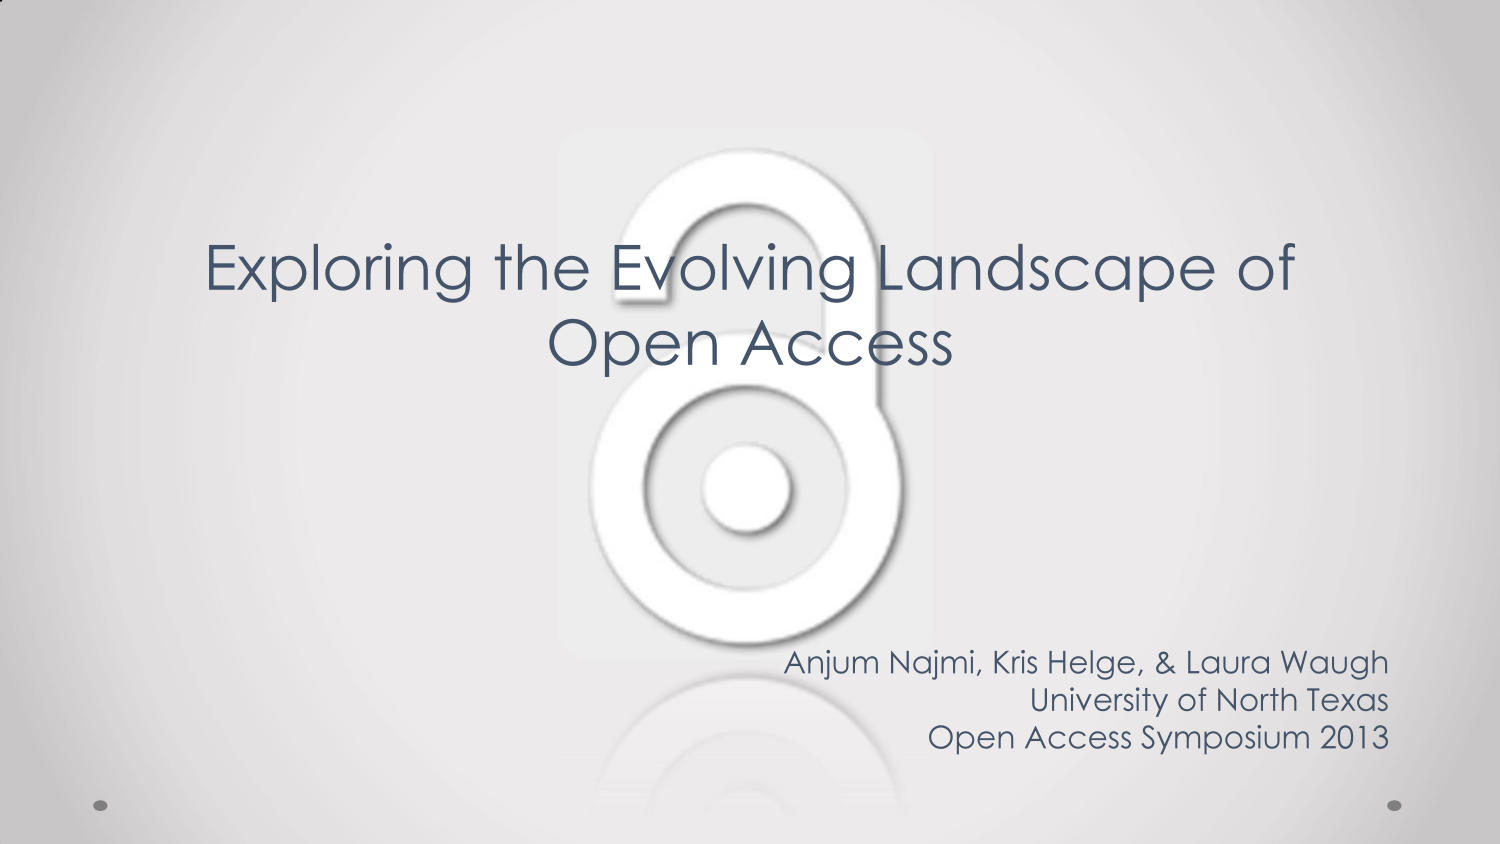 Exploring the Evolving Landscape of Open Access                                                                                                      [Sequence #]: 1 of 17